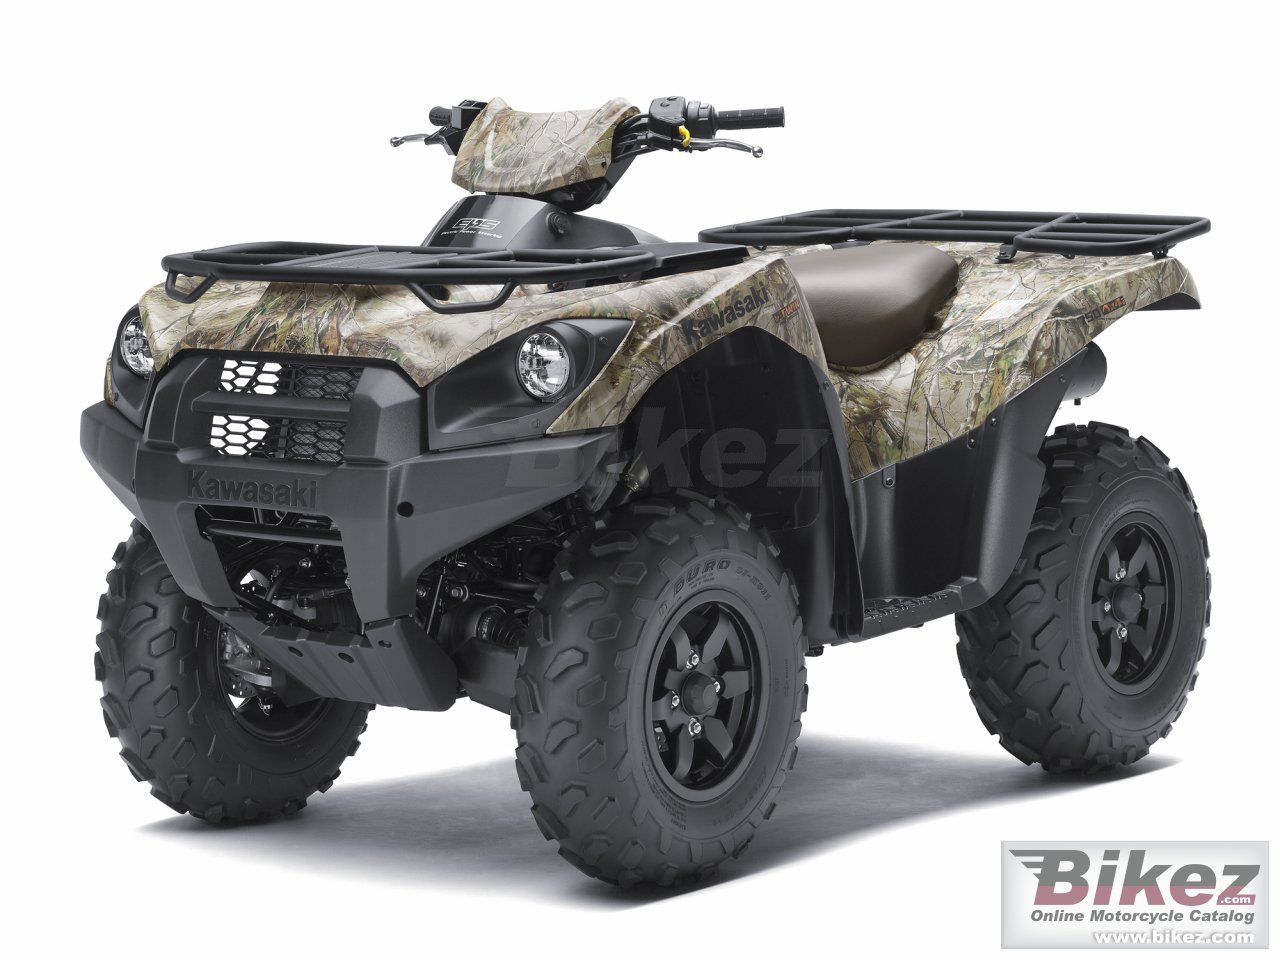 Big Kawasaki brute force 750 4x4i eps camo picture and wallpaper from Bikez.com